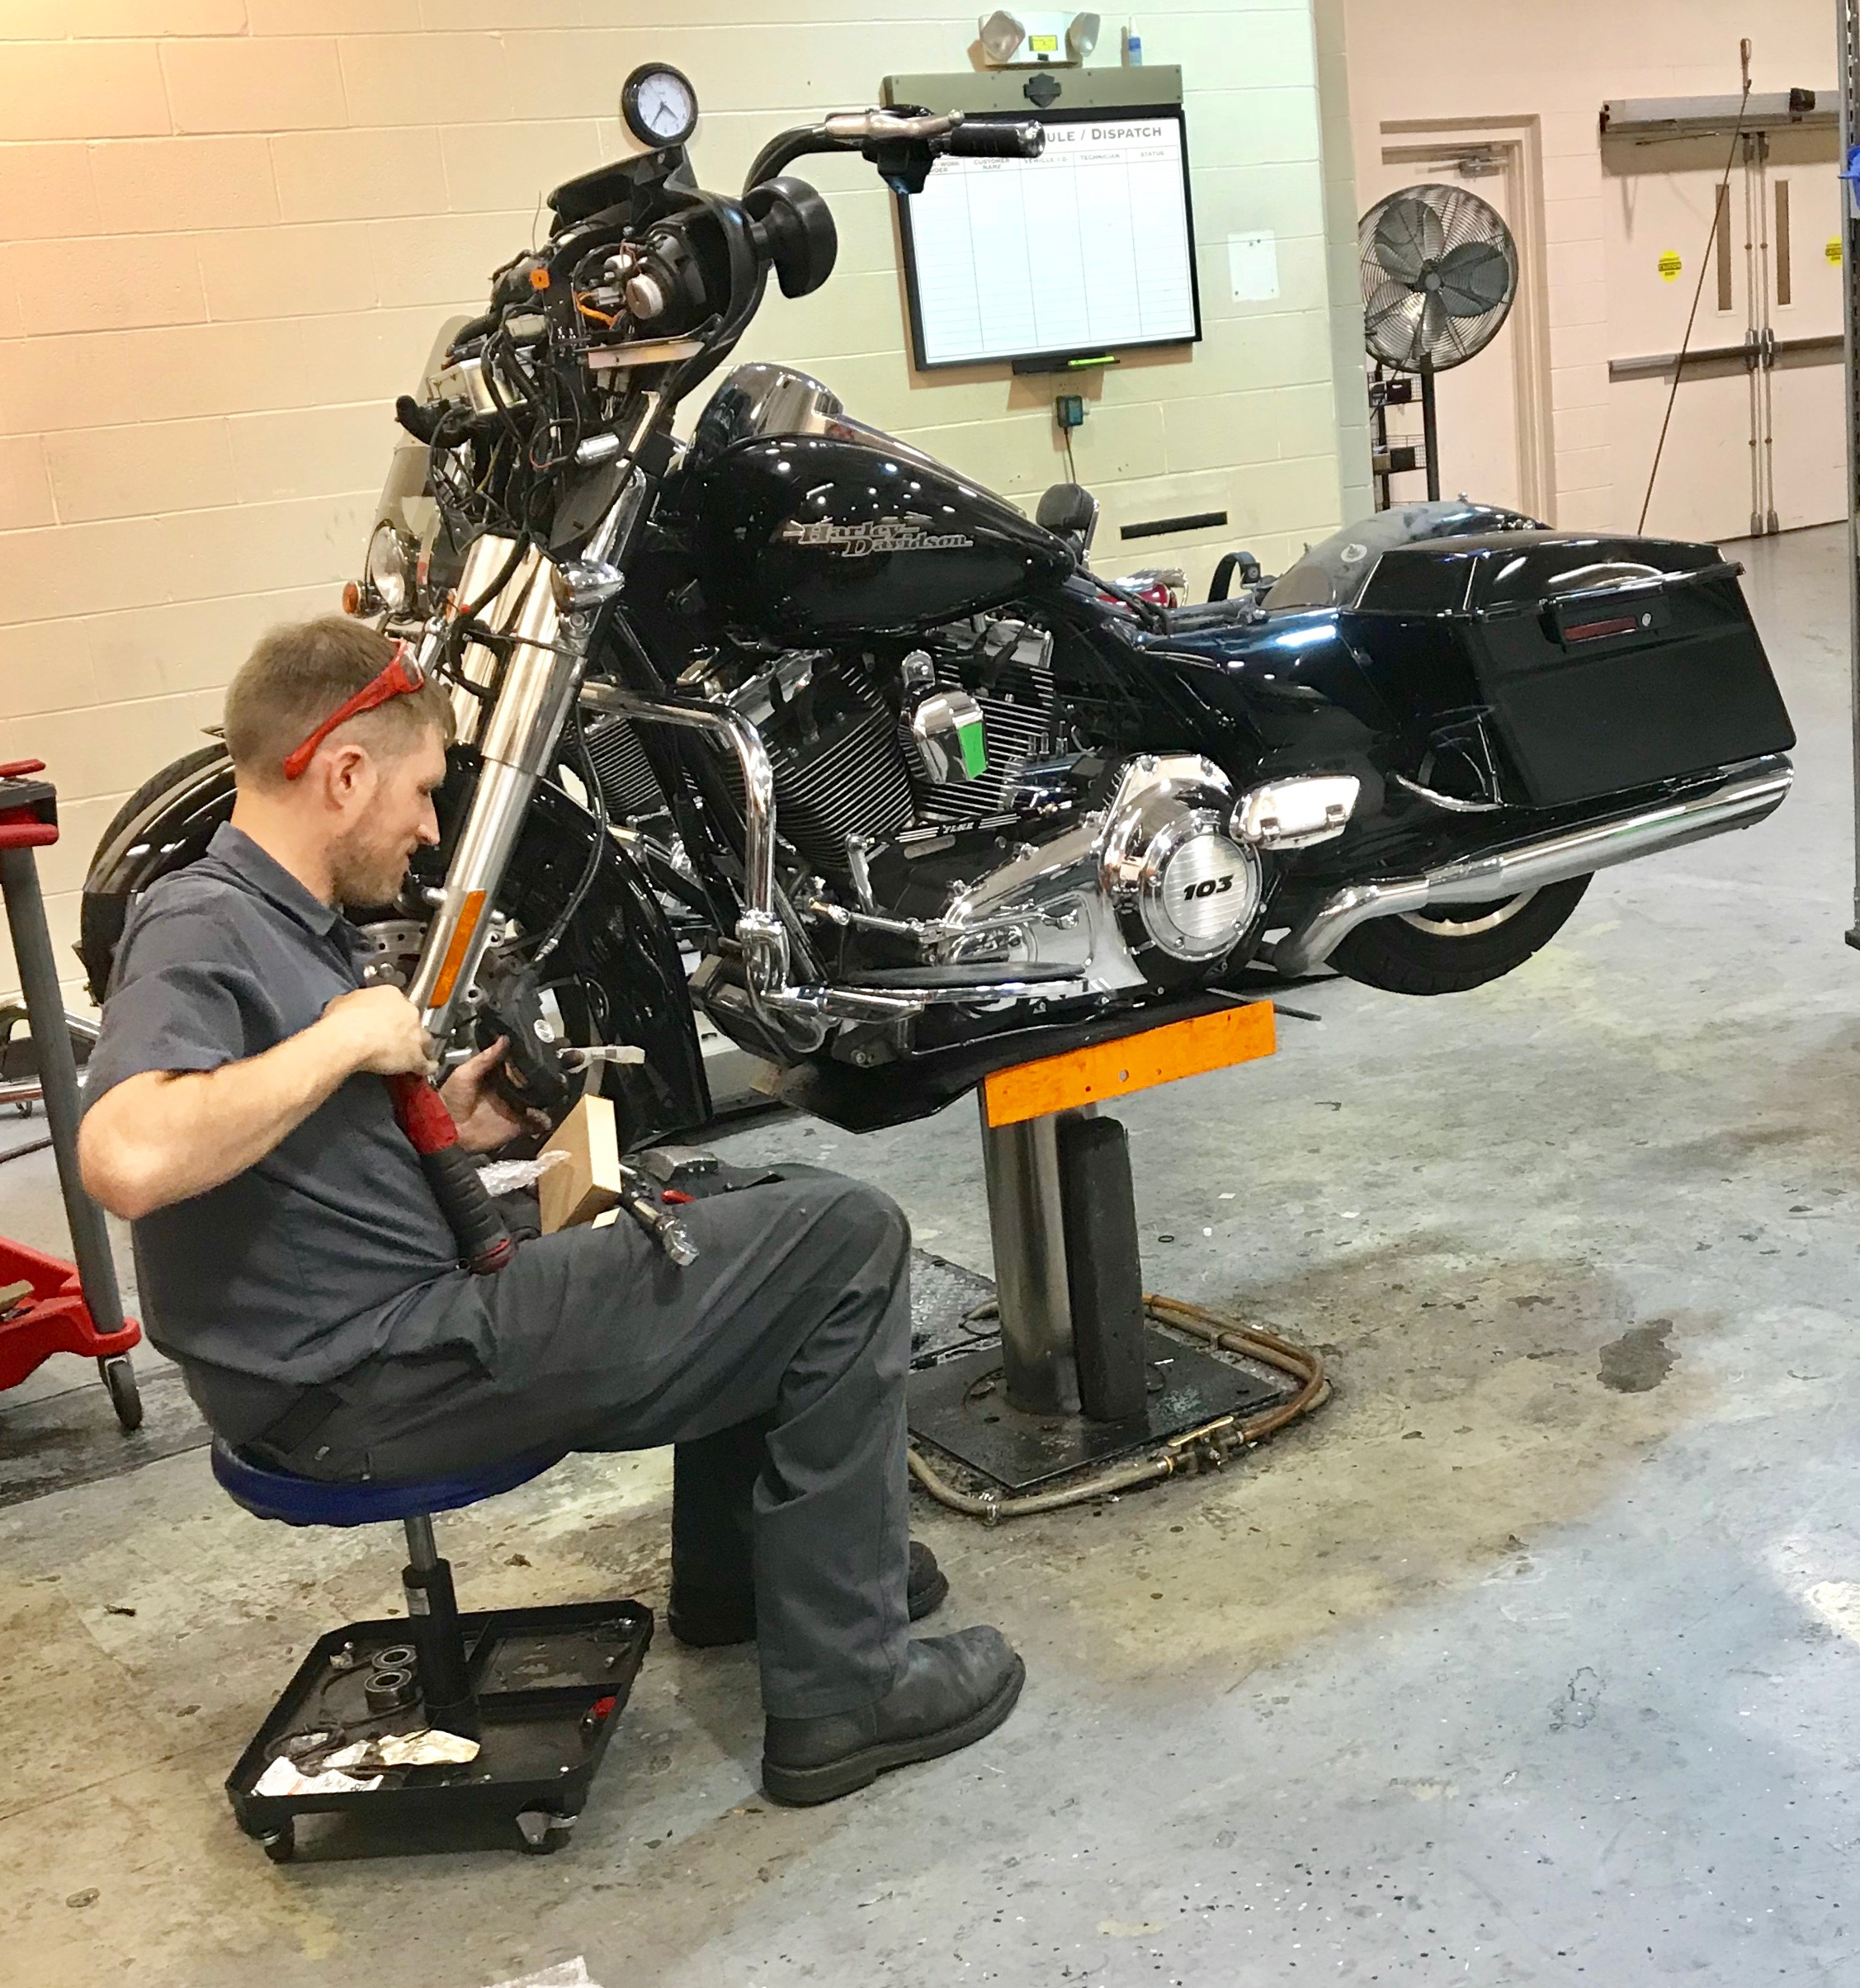 Get Your Harley-Davidson Serviced At Bud's Harley-Davidson